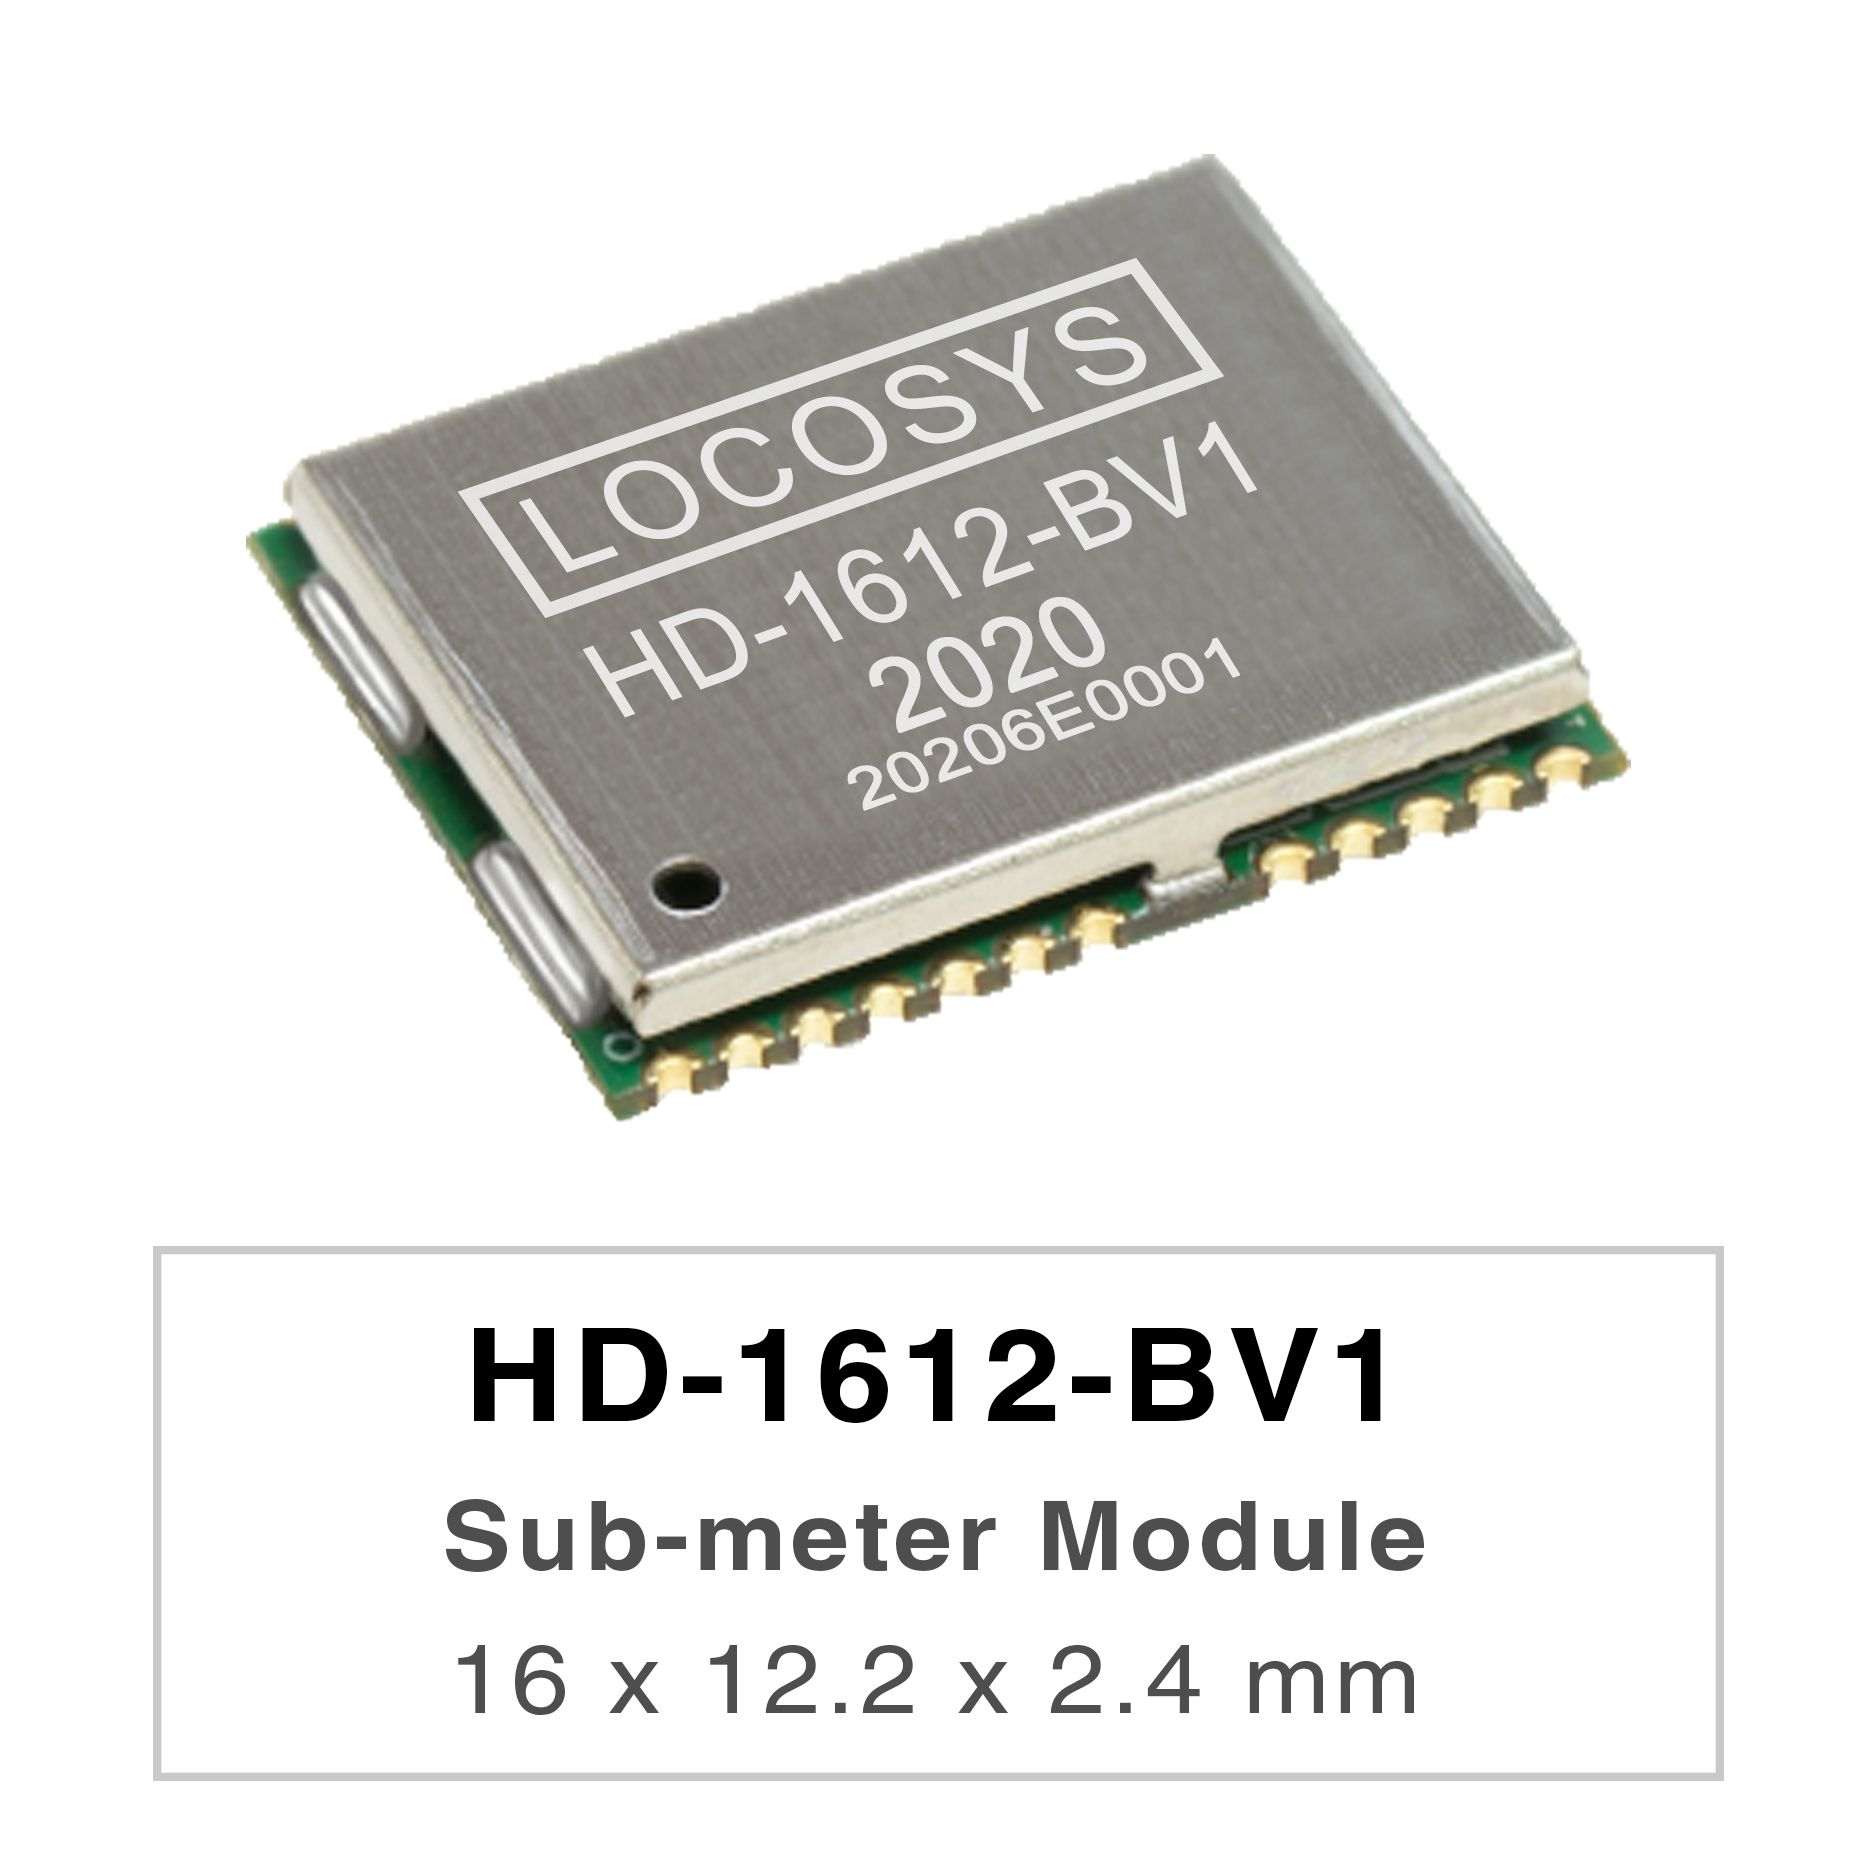 LOCOSYS HD-1612-BV1 is a high-performance GNSS positioning module that is capable of tracking all global civil navigation systems (GPS, QZSS, GLONASS, BEIDOU and GALILEO).